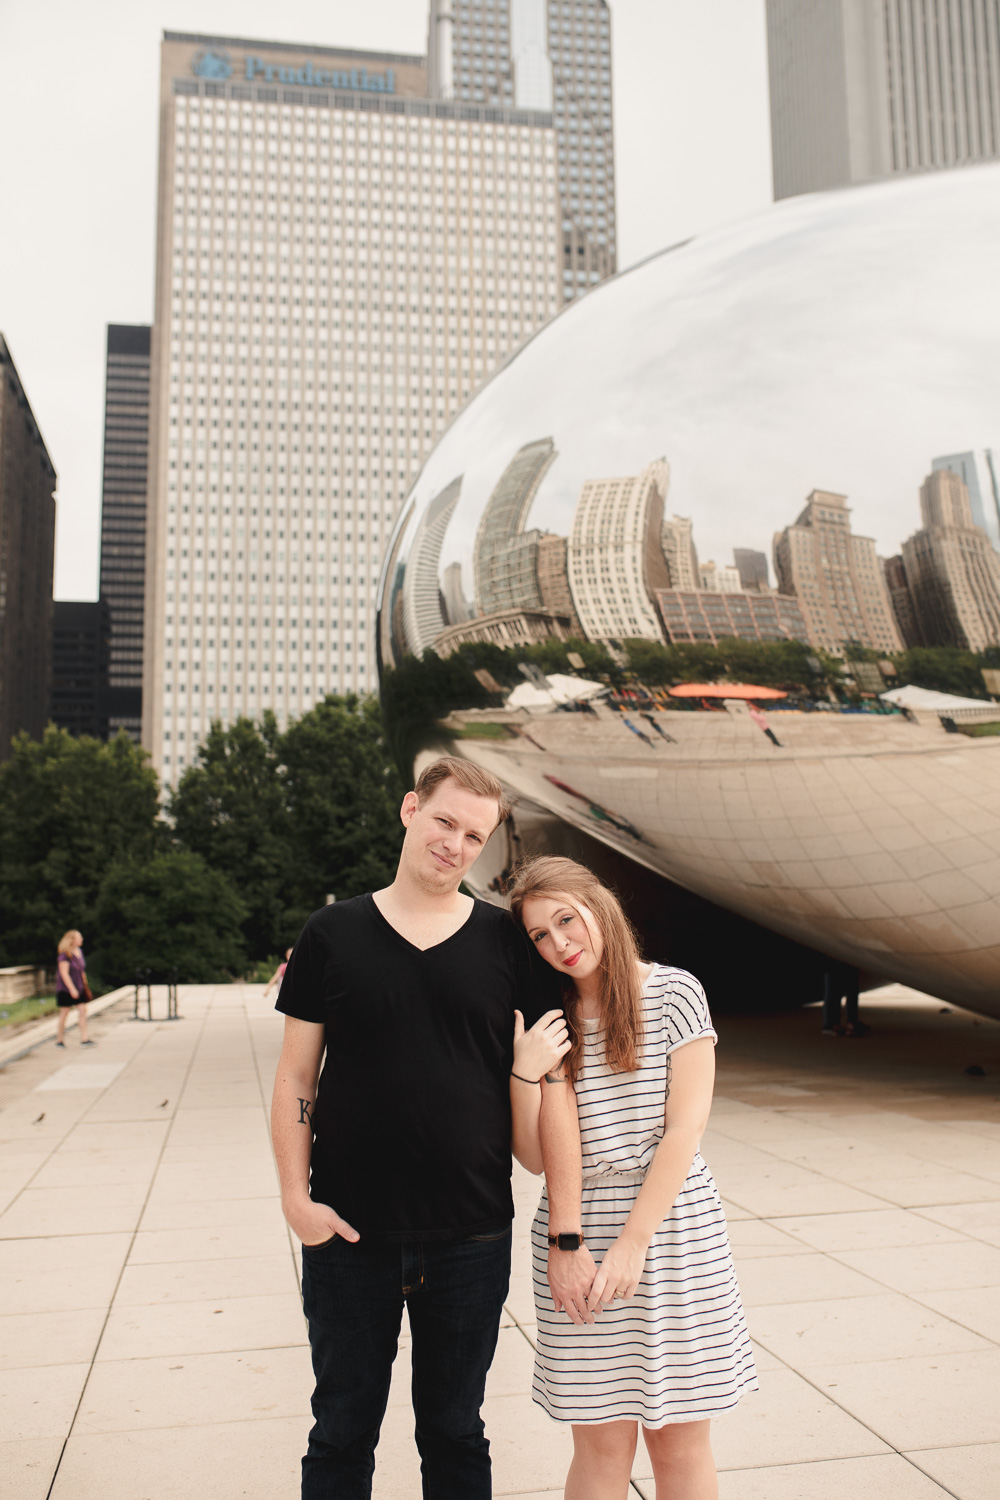 Chicago_The_Bean_Photographer_Kelsey_Diane_Photography_Destination_Wedding_Photographer_Lake_Michigan_Illnois_Wedding_Photographer-3422.jpg